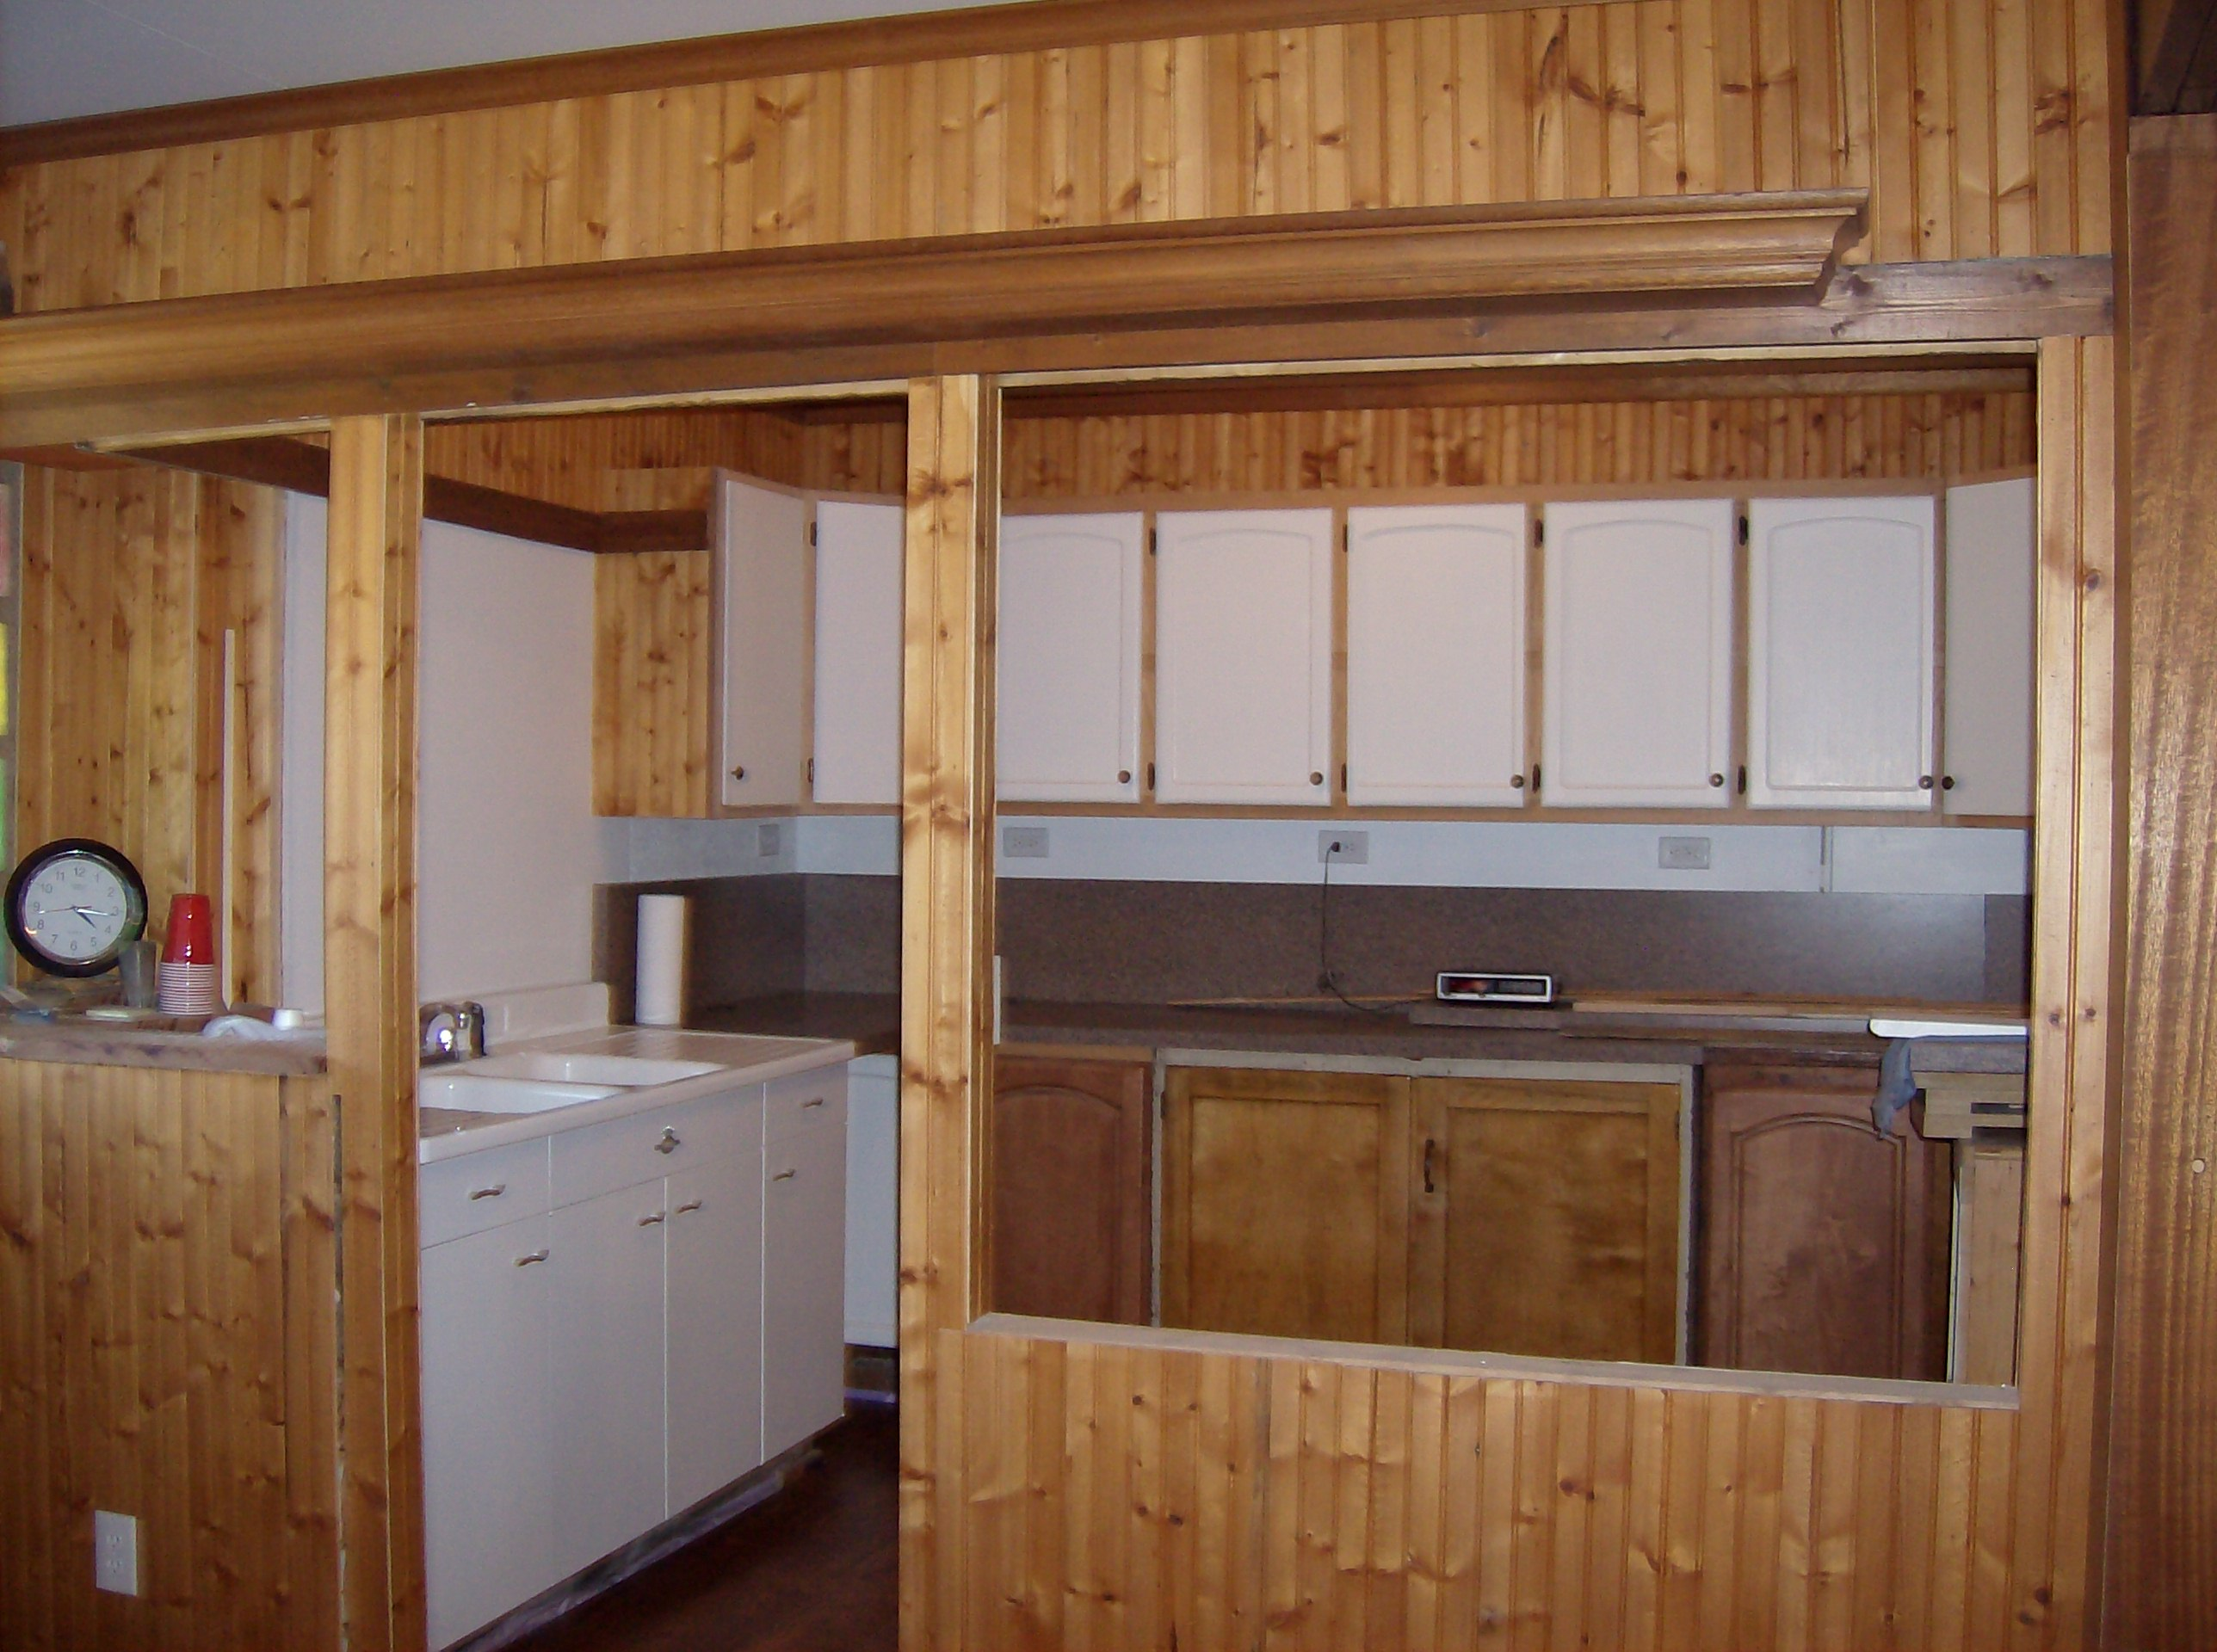 Building A Kitchen Cabinet Improving Kitchen Designs With Kitchen Cabinet Building